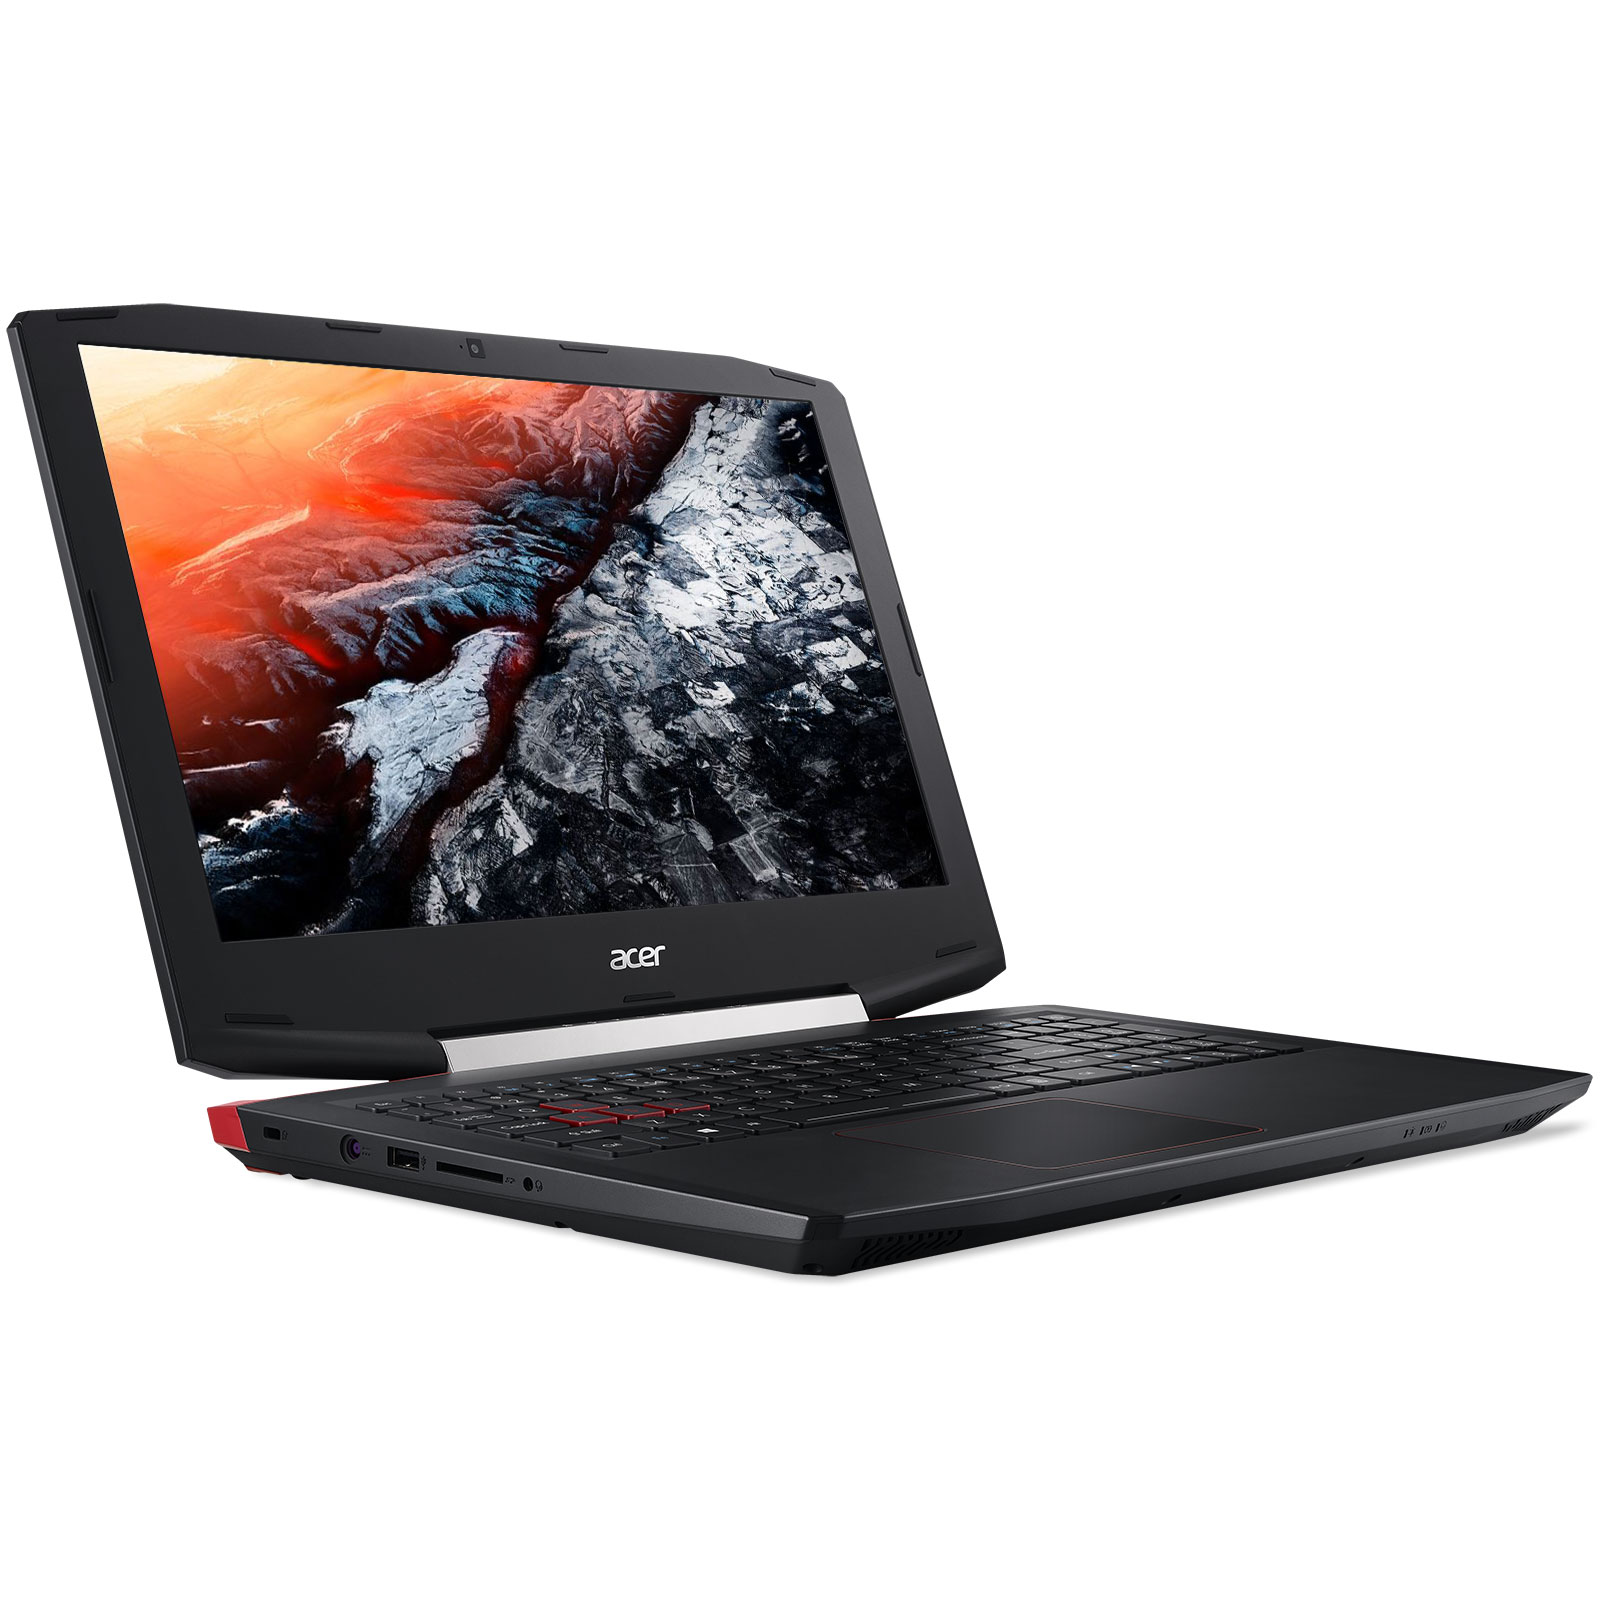 "PC portable Acer Aspire VX15 VX5-591G-78BN Intel Core i7-7700HQ 8 Go SSD 128 Go + HDD 1 To 15.6"" LED Full HD NVIDIA GeForce GTX 1050 4 Go Wi-Fi AC/Bluetooth Webcam Windows 10 Famille 64 bits"